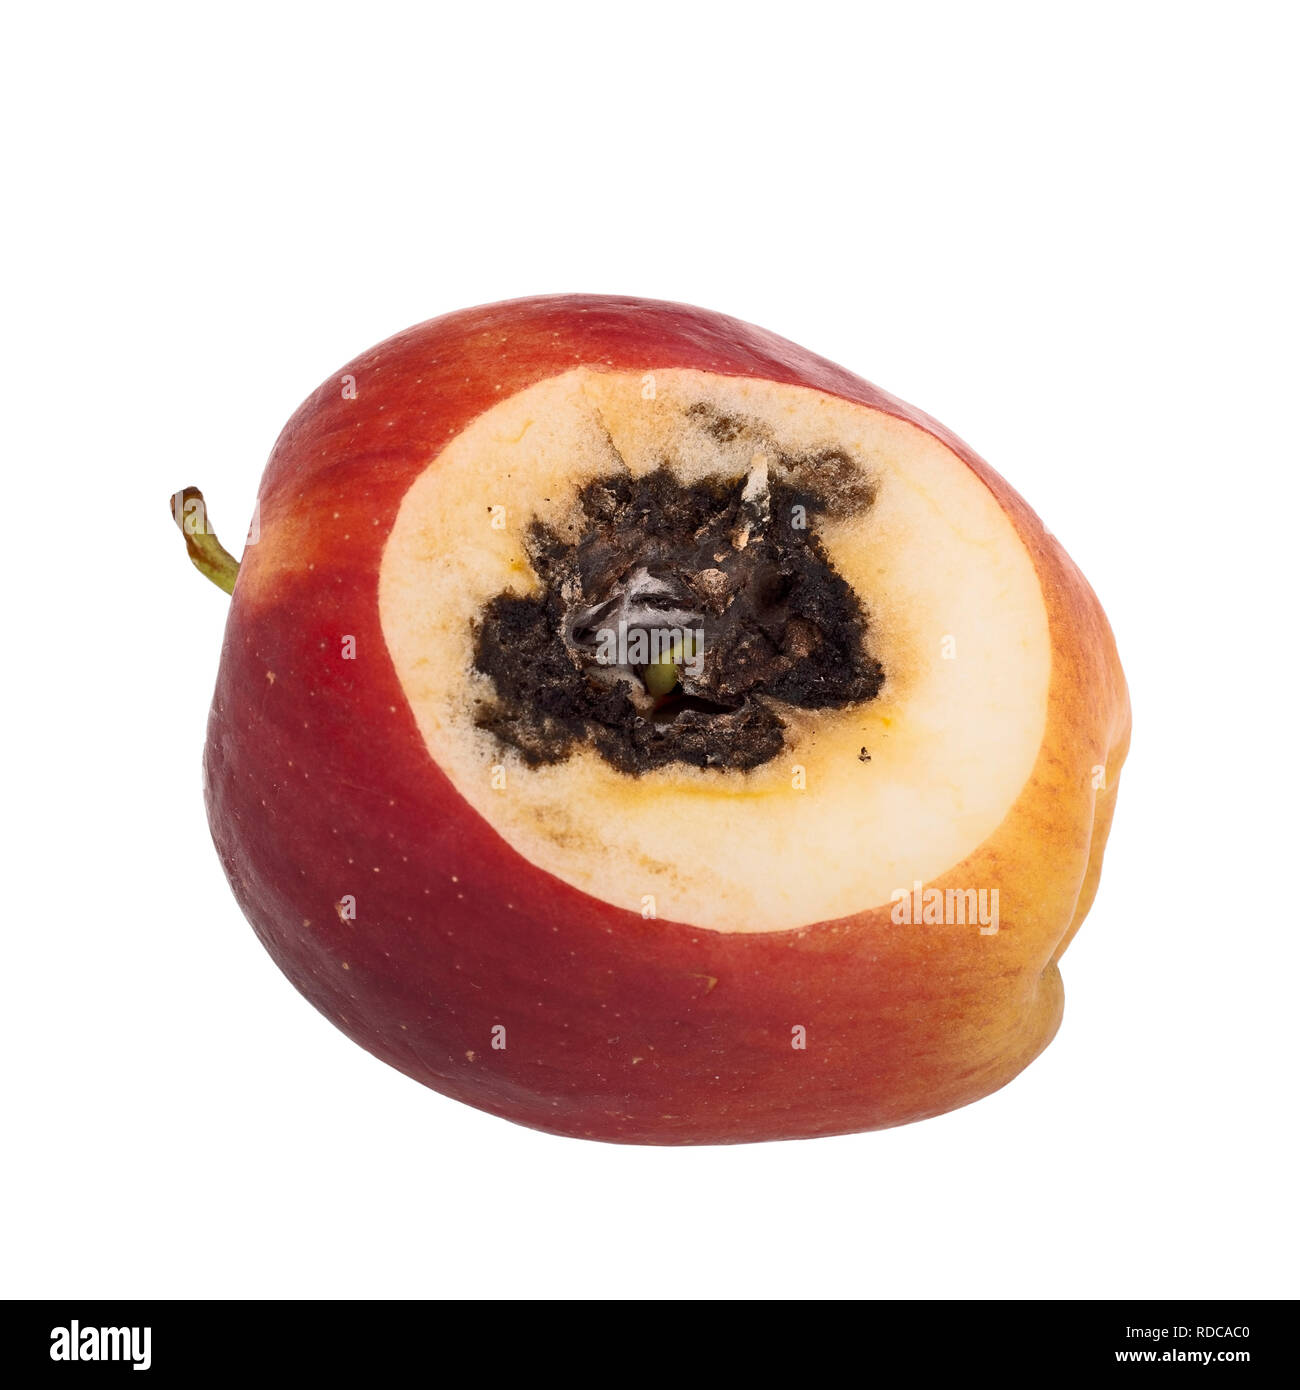 Vivipary in apple. Seeds, pips are already growing in the core when the fruit is cut open. - Stock Image